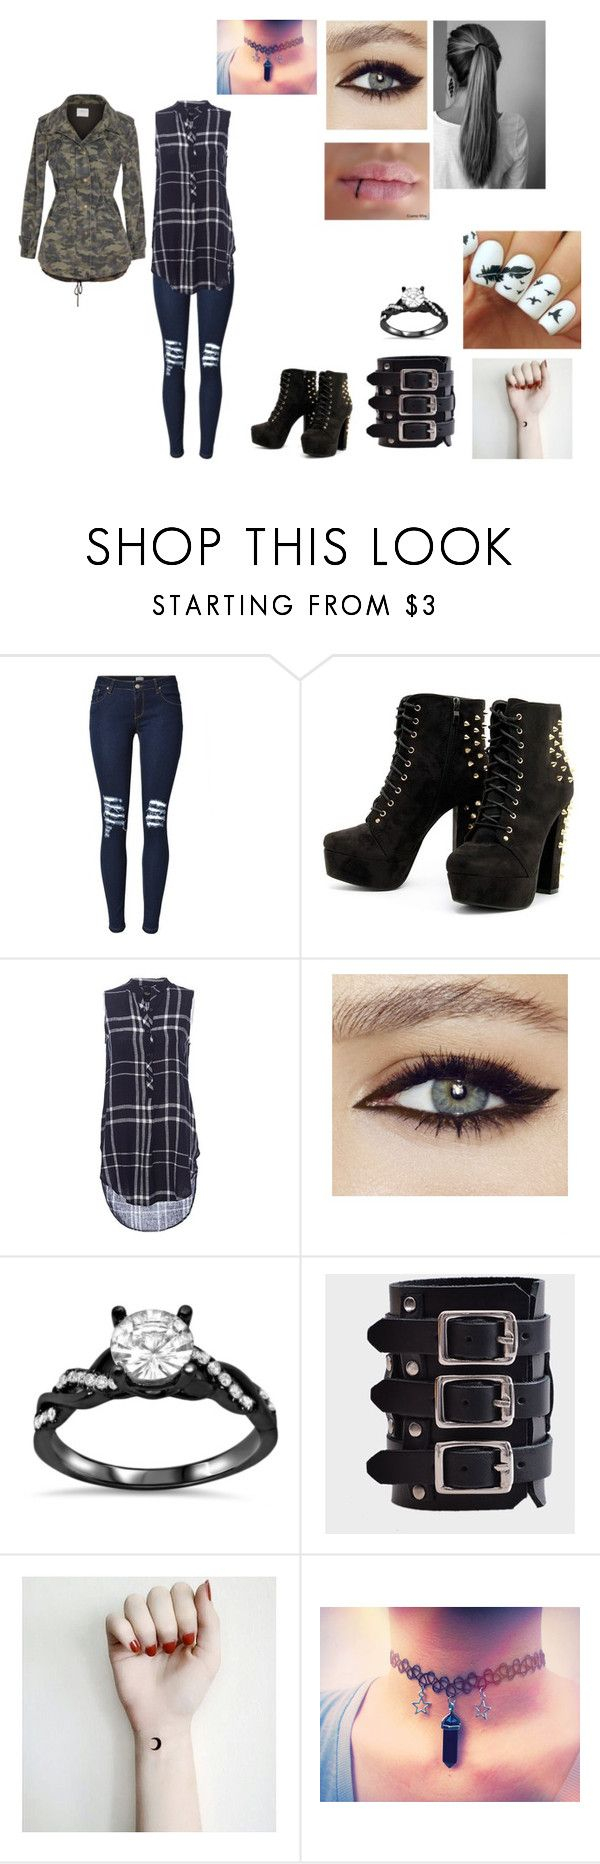 """""""Untitled #5"""" by ravenclaw102 ❤ liked on Polyvore featuring Velvet by Graham & Spencer"""